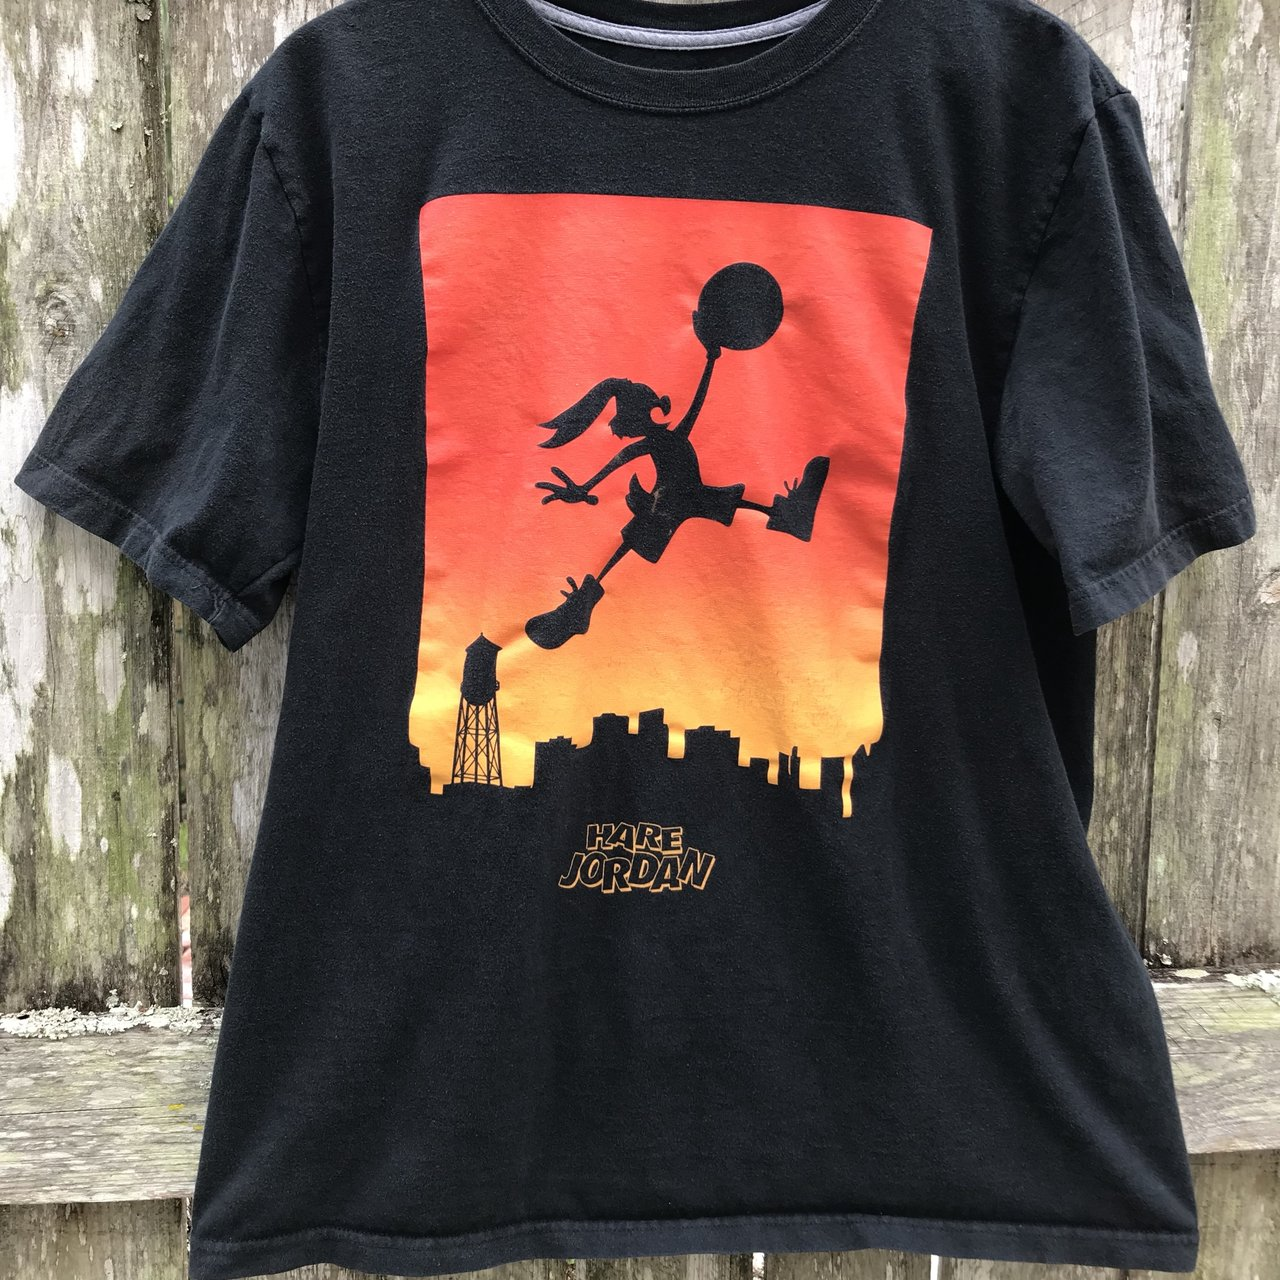 03b01d871b4 Retro Hare Jordan T-shirt Faded from age but no holes or - Depop